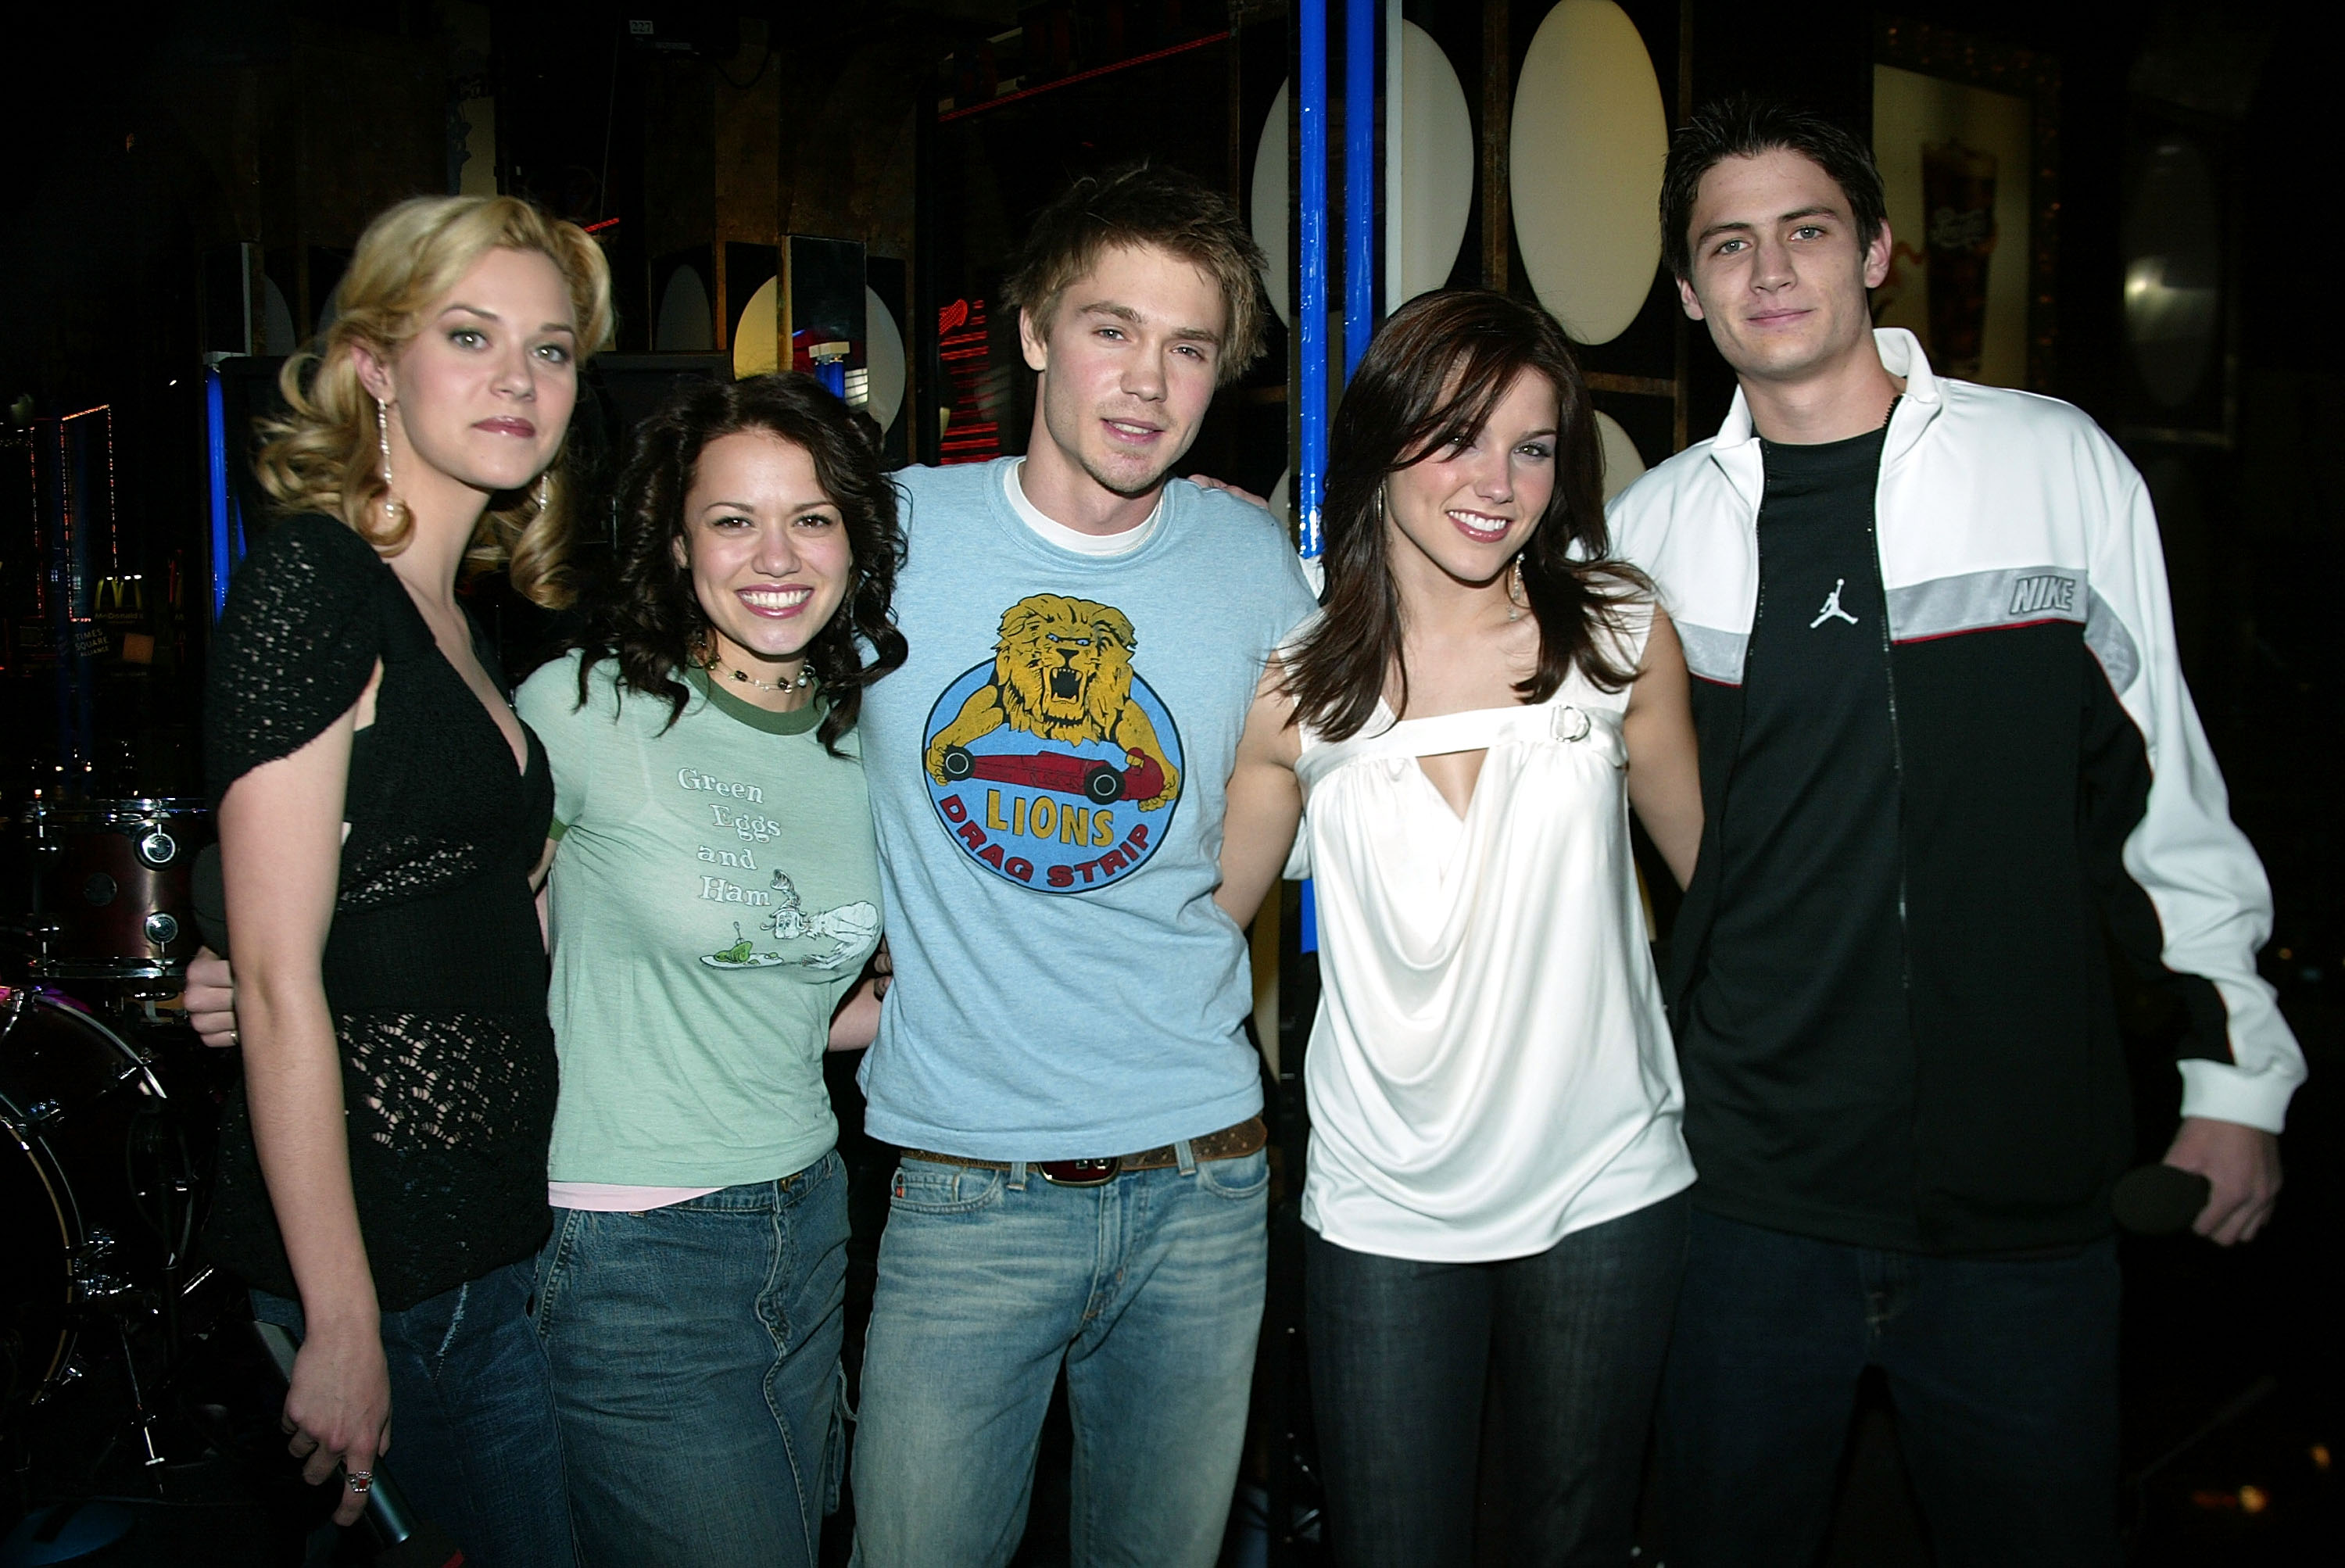 One tree hill cast hookup in real life